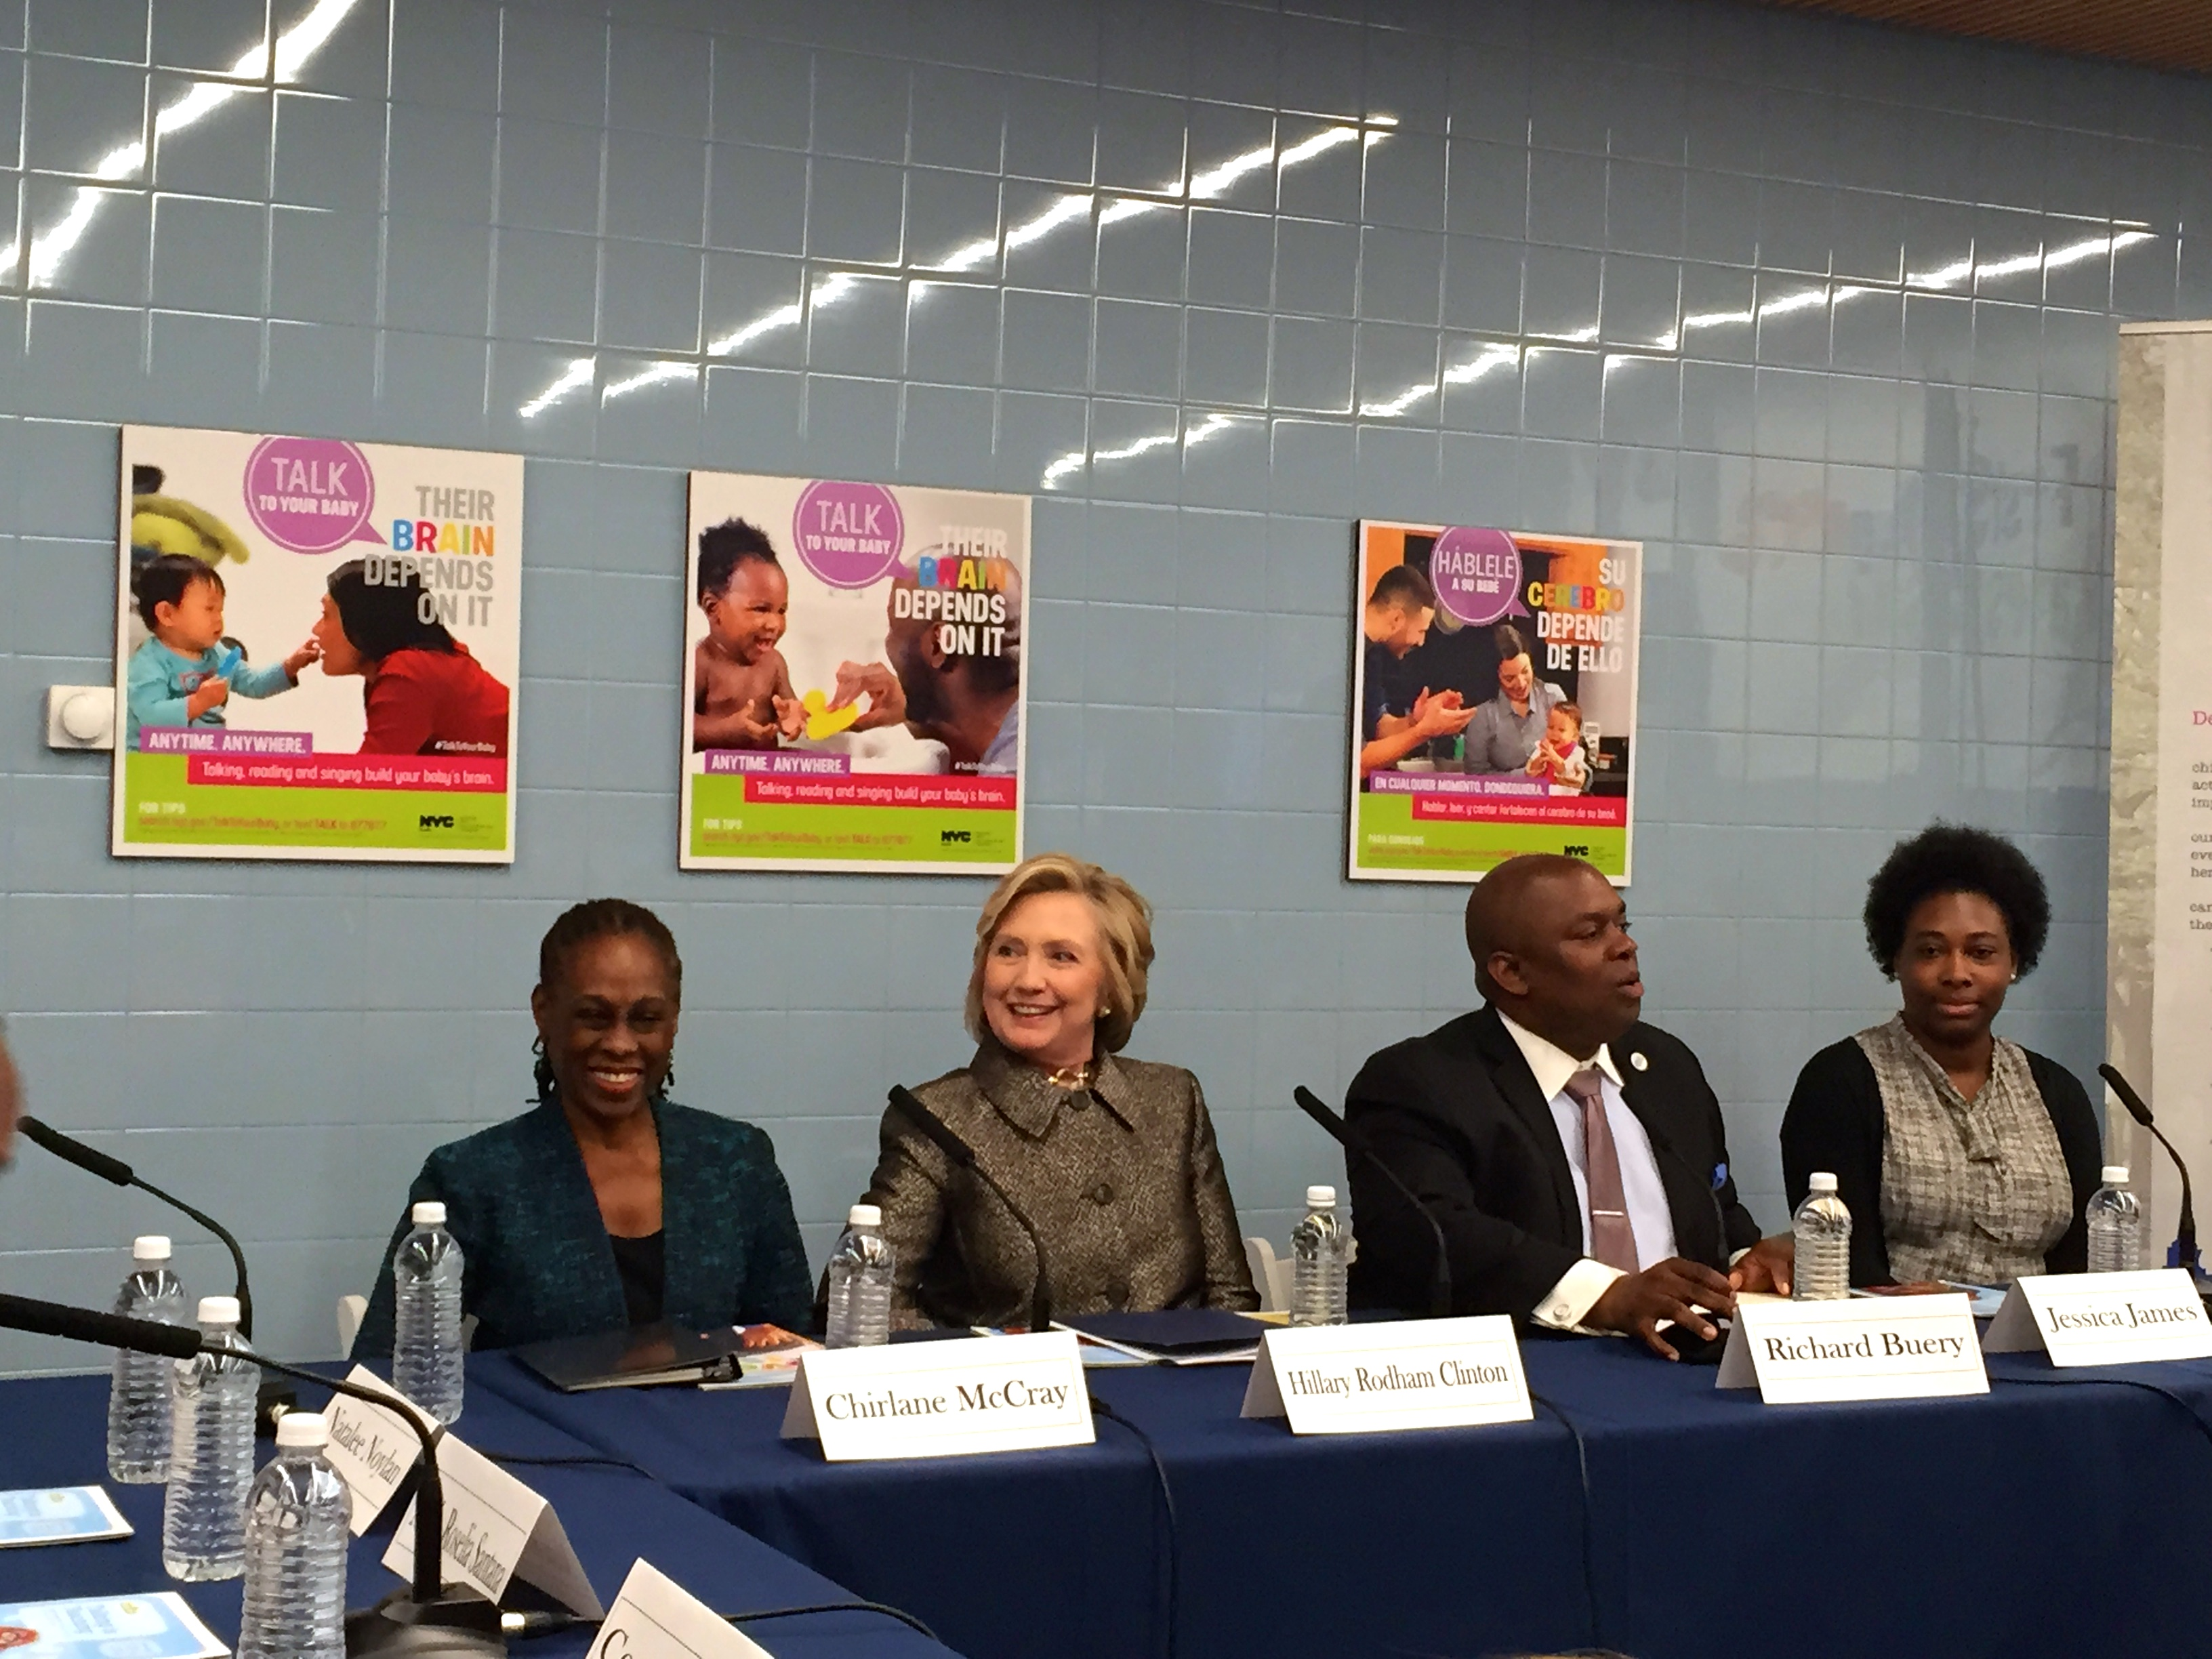 First Lady Chirlane McCray, former Secretary of State Hillary Clinton, and Deputy Mayor Richard Buery at a roundtable in Brownsville, Brooklyn. (Photo: Jillian Jorgensen/New York Observer)